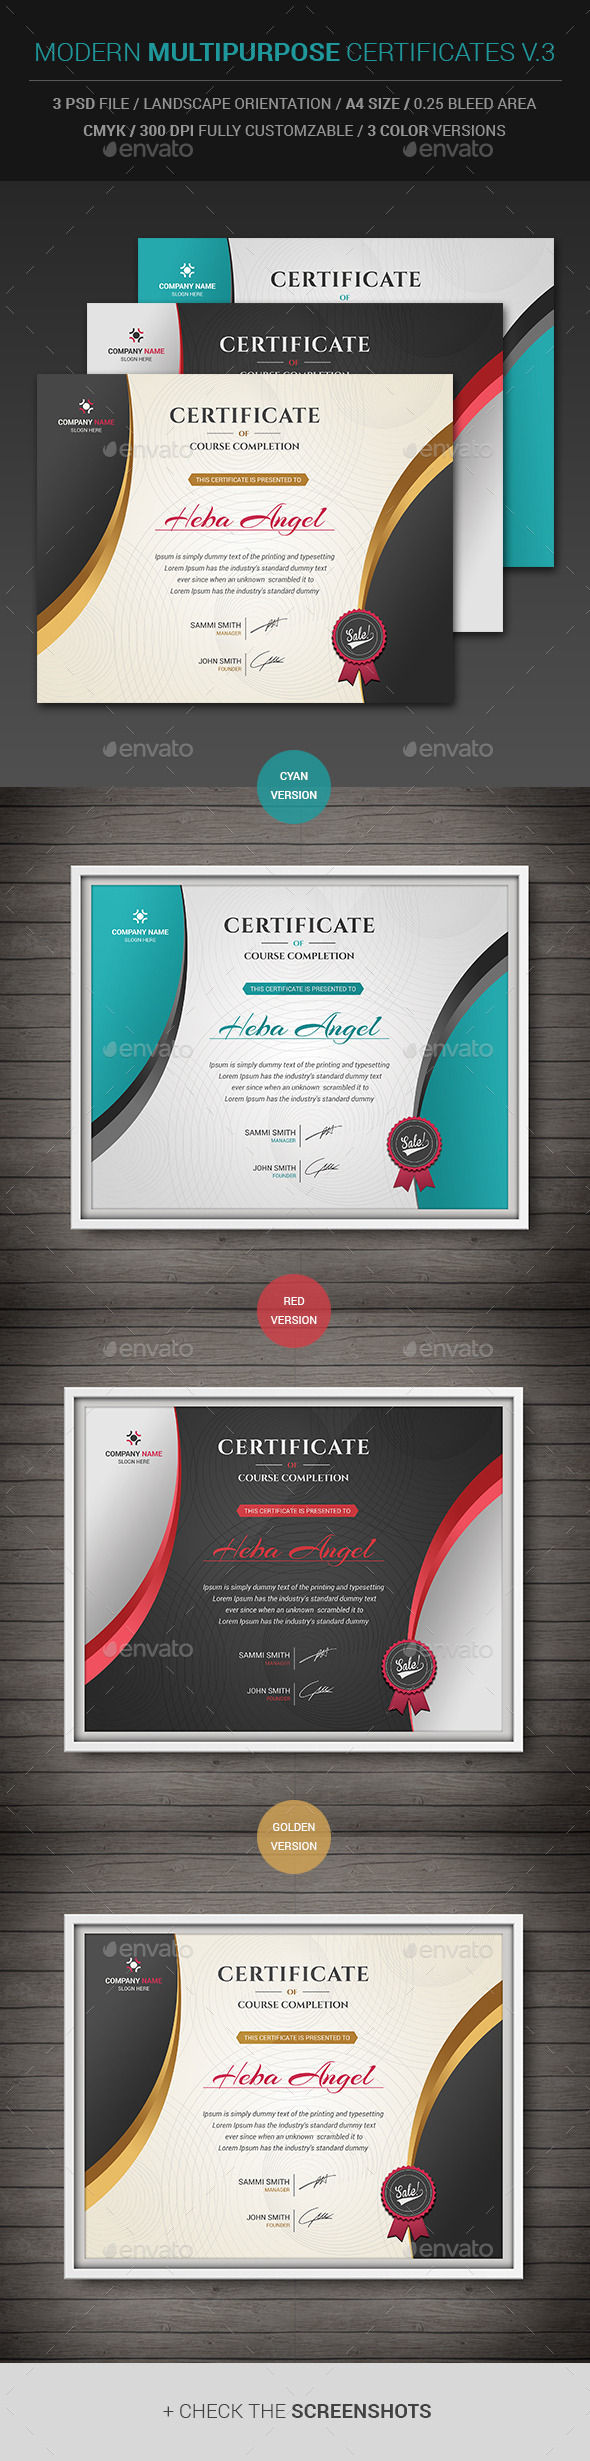 GraphicRiver Modern Multipurpose Certificates v.3 11559846